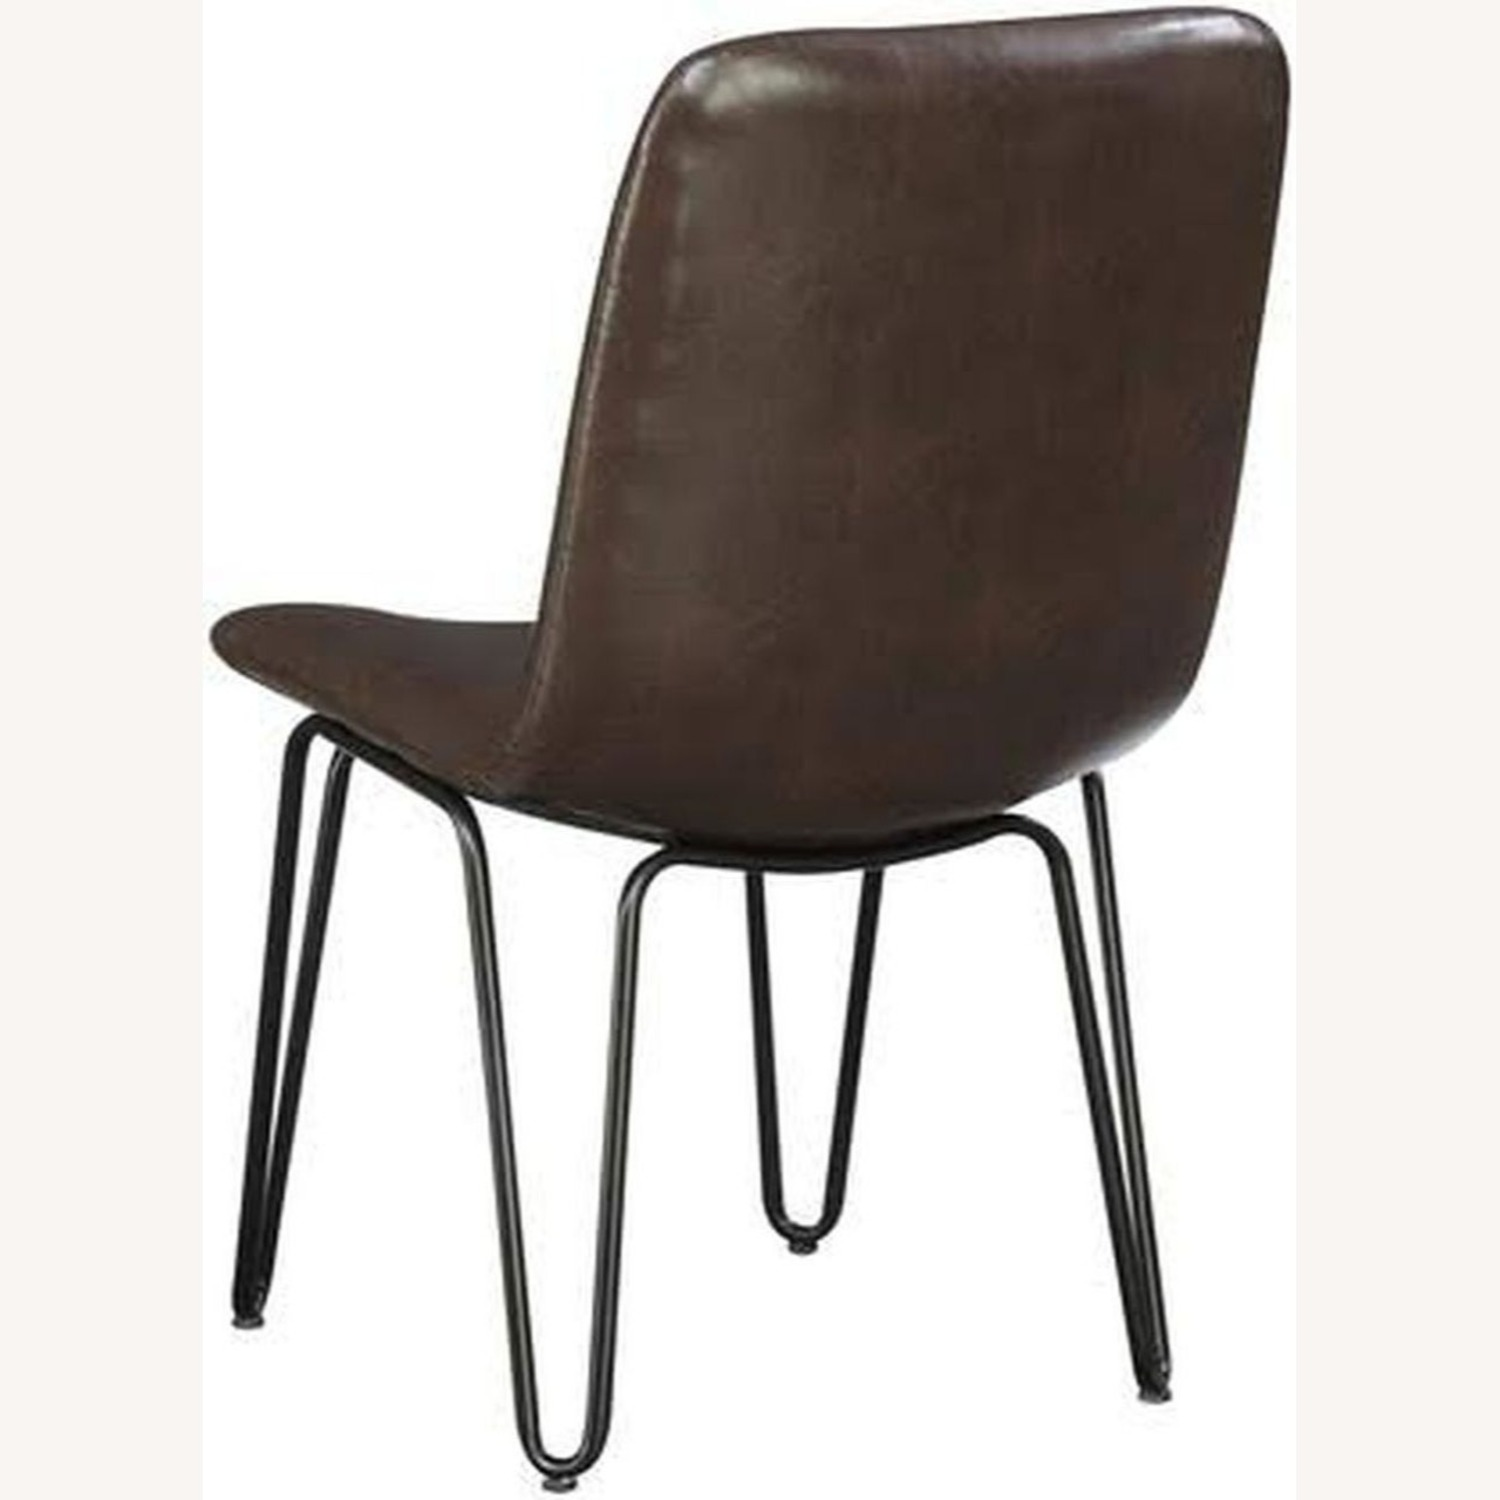 Modern Side Chair Wrapped In Brown Leatherette - image-2